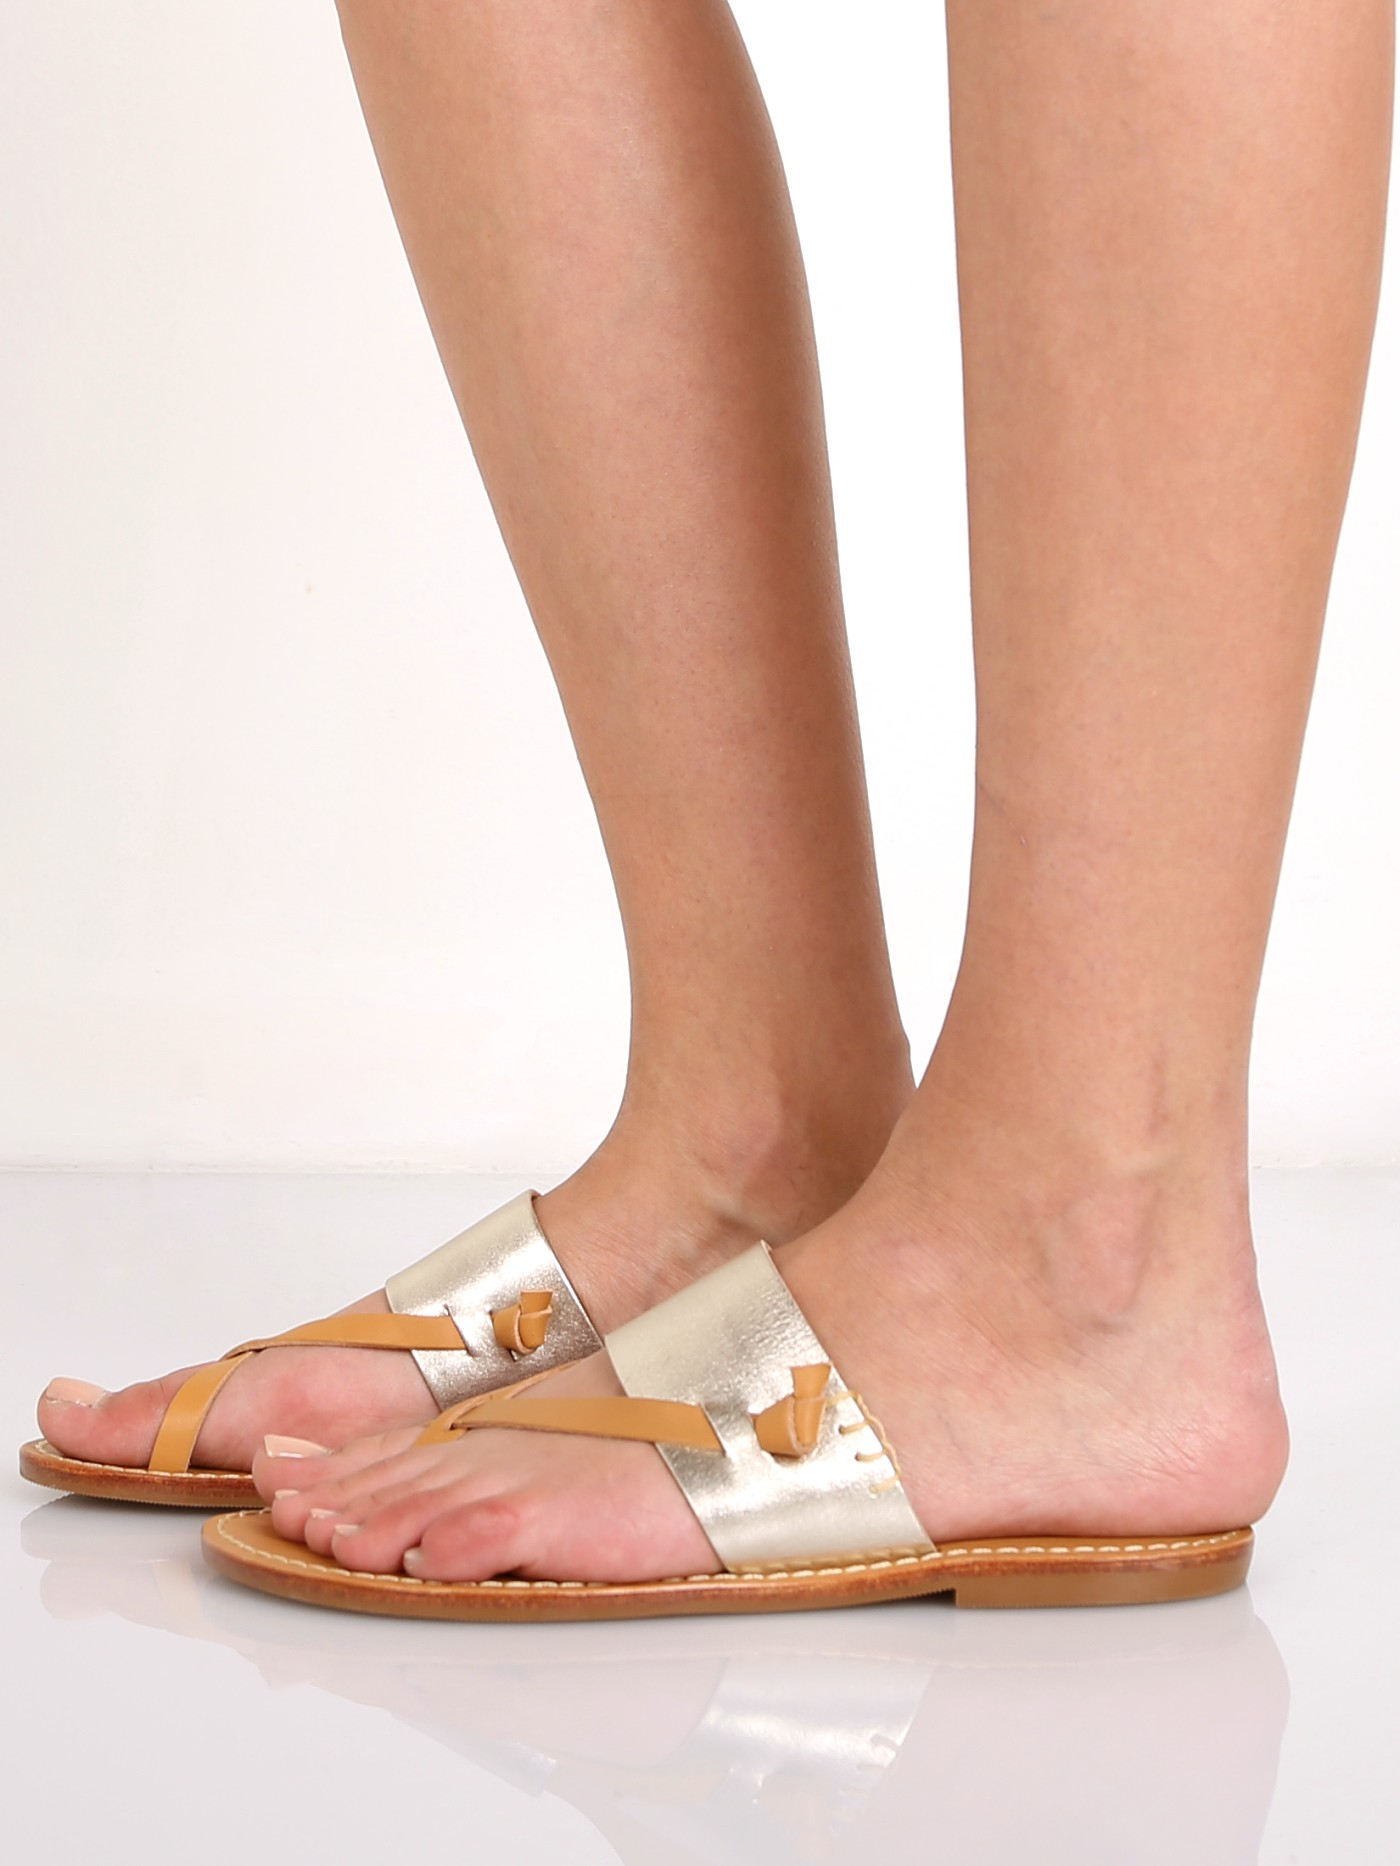 eee66664d6d9 Soludos Slotted Thong Sandal Metallic Platinum FST1300 041 - Free Shipping  at Largo Drive